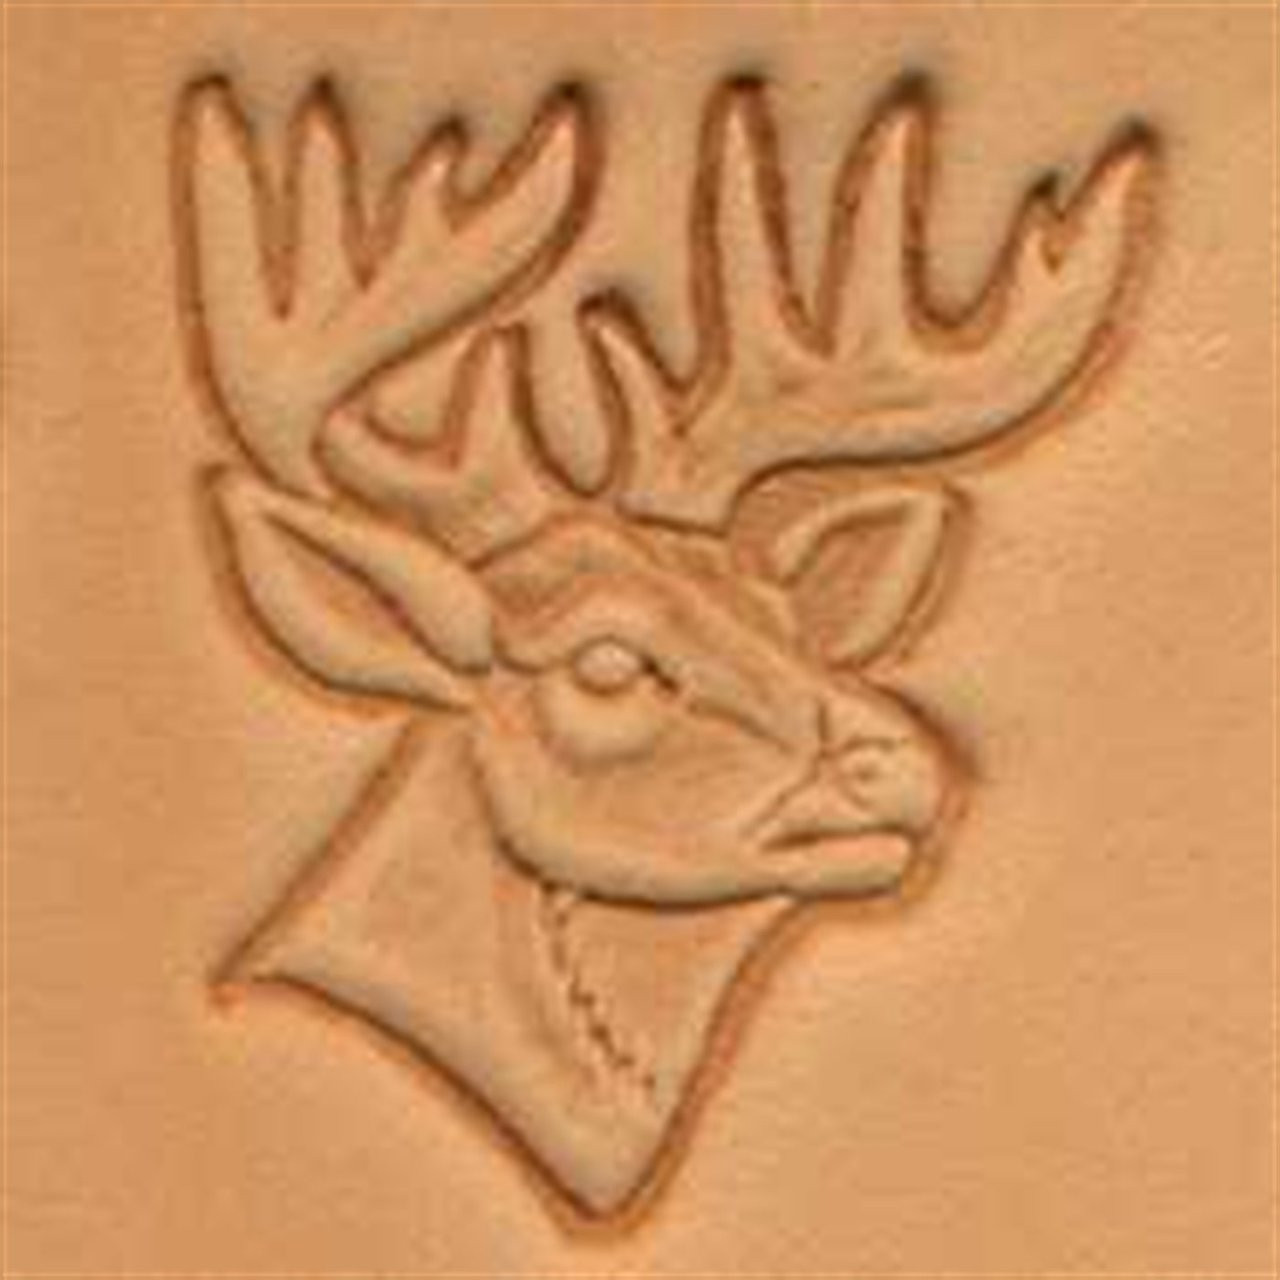 Craftool 3d Deer Head Stamp 88341 00 By Tandy Leather Stecksstore